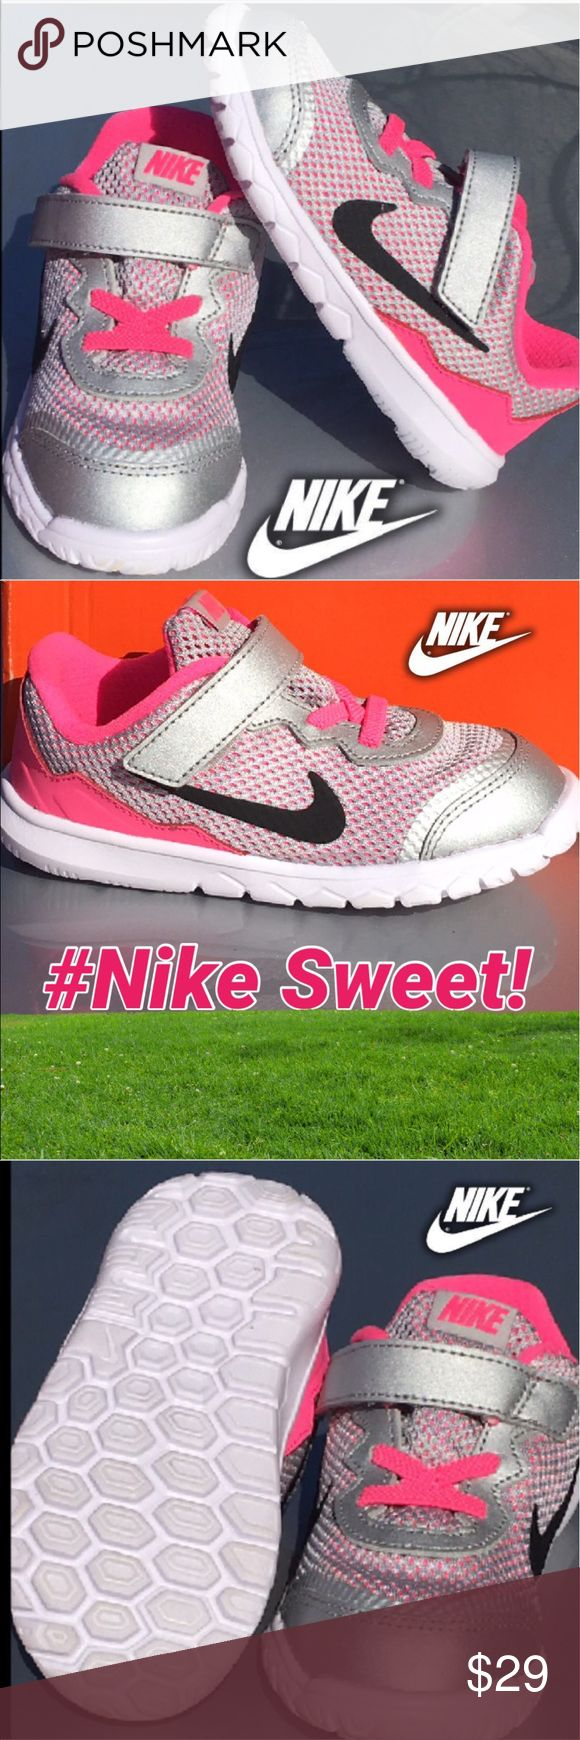 New Nike Toddler Girls Size 9💕💕💕 Cute New Nike toddler girls sneaker size 9.  Originally $49 now only $29 price is firm. The sneakers run about a half size small please keep that in mind when purchasing. 💕💕💕🛍🛍🛍🛍 Nike Shoes Sneakers